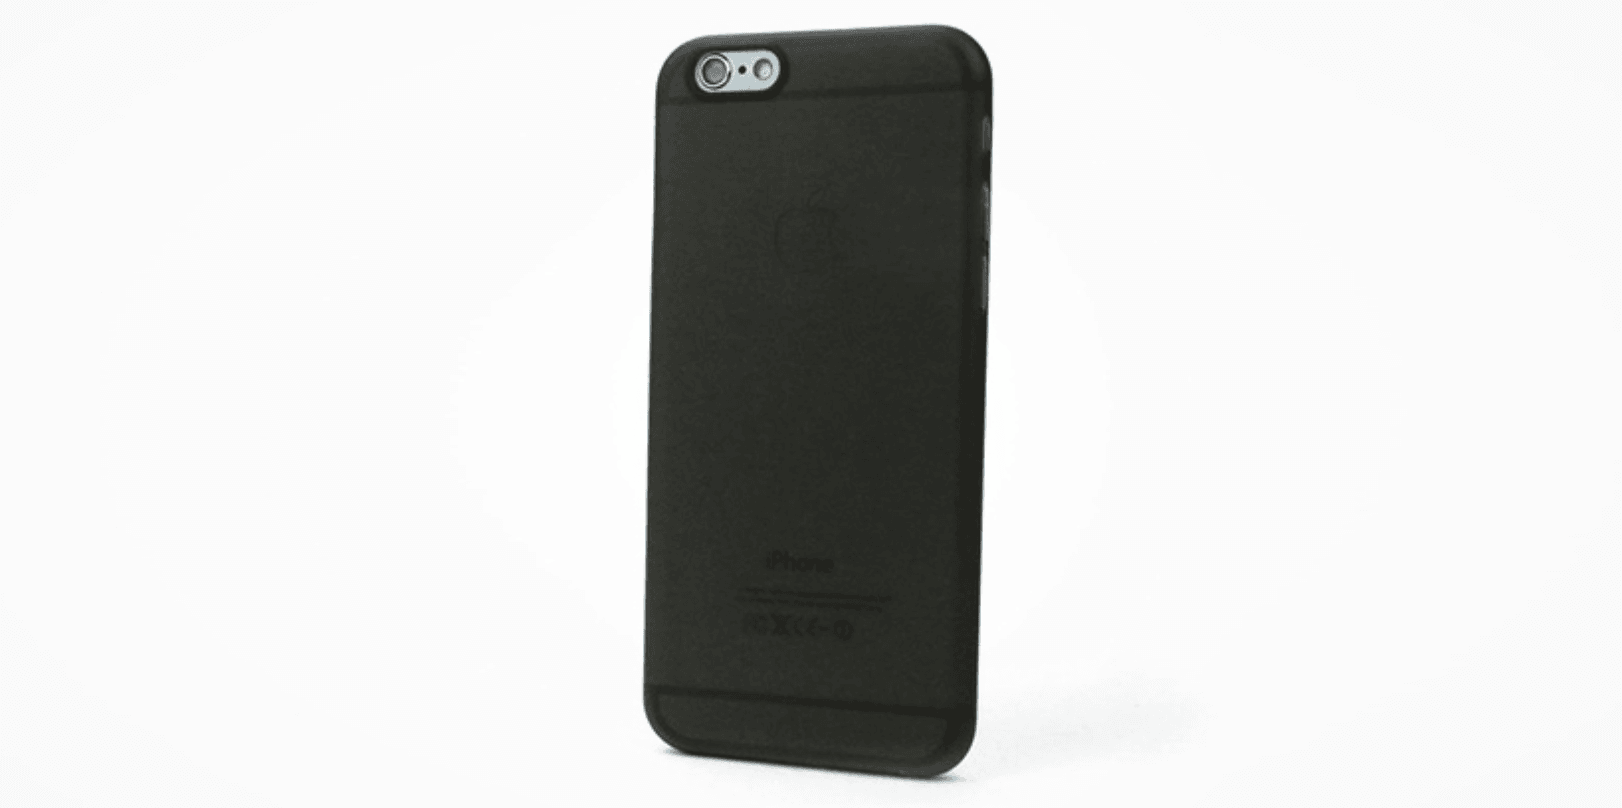 Get your iPhone's slim form back with Peel cases